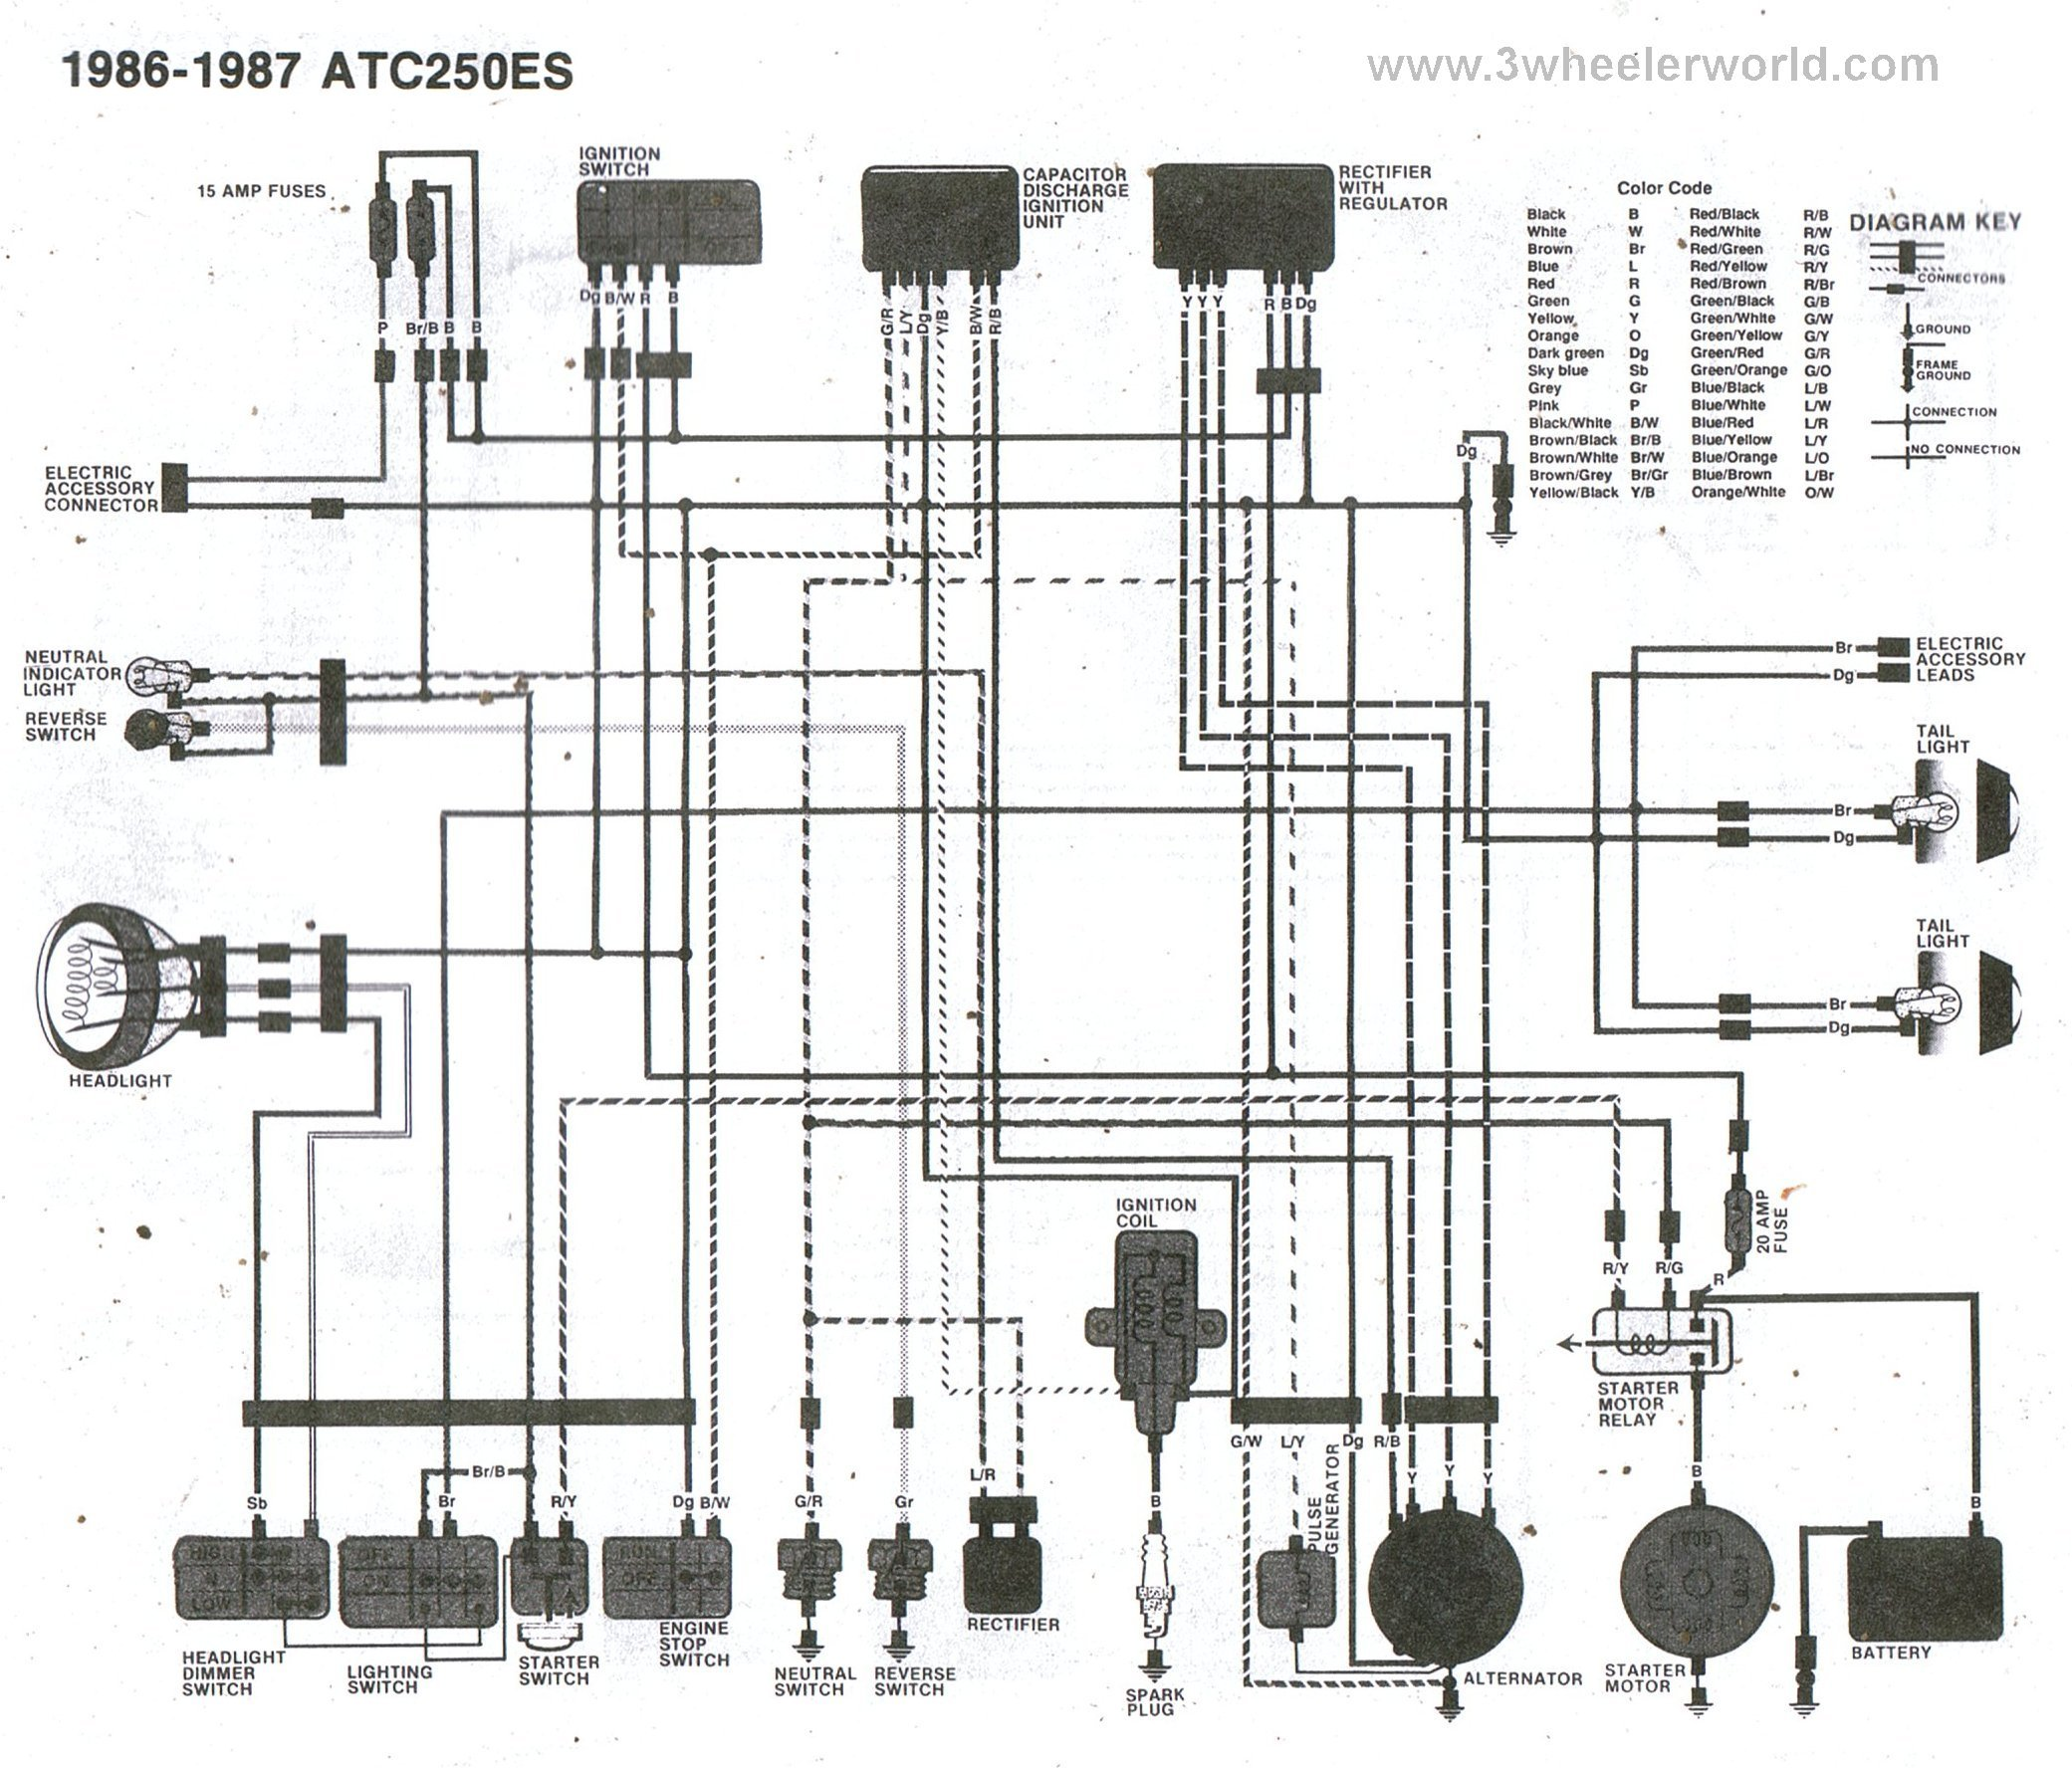 Outstanding Kawasaki Ignition Coil Wiring Diagram Pictures ...